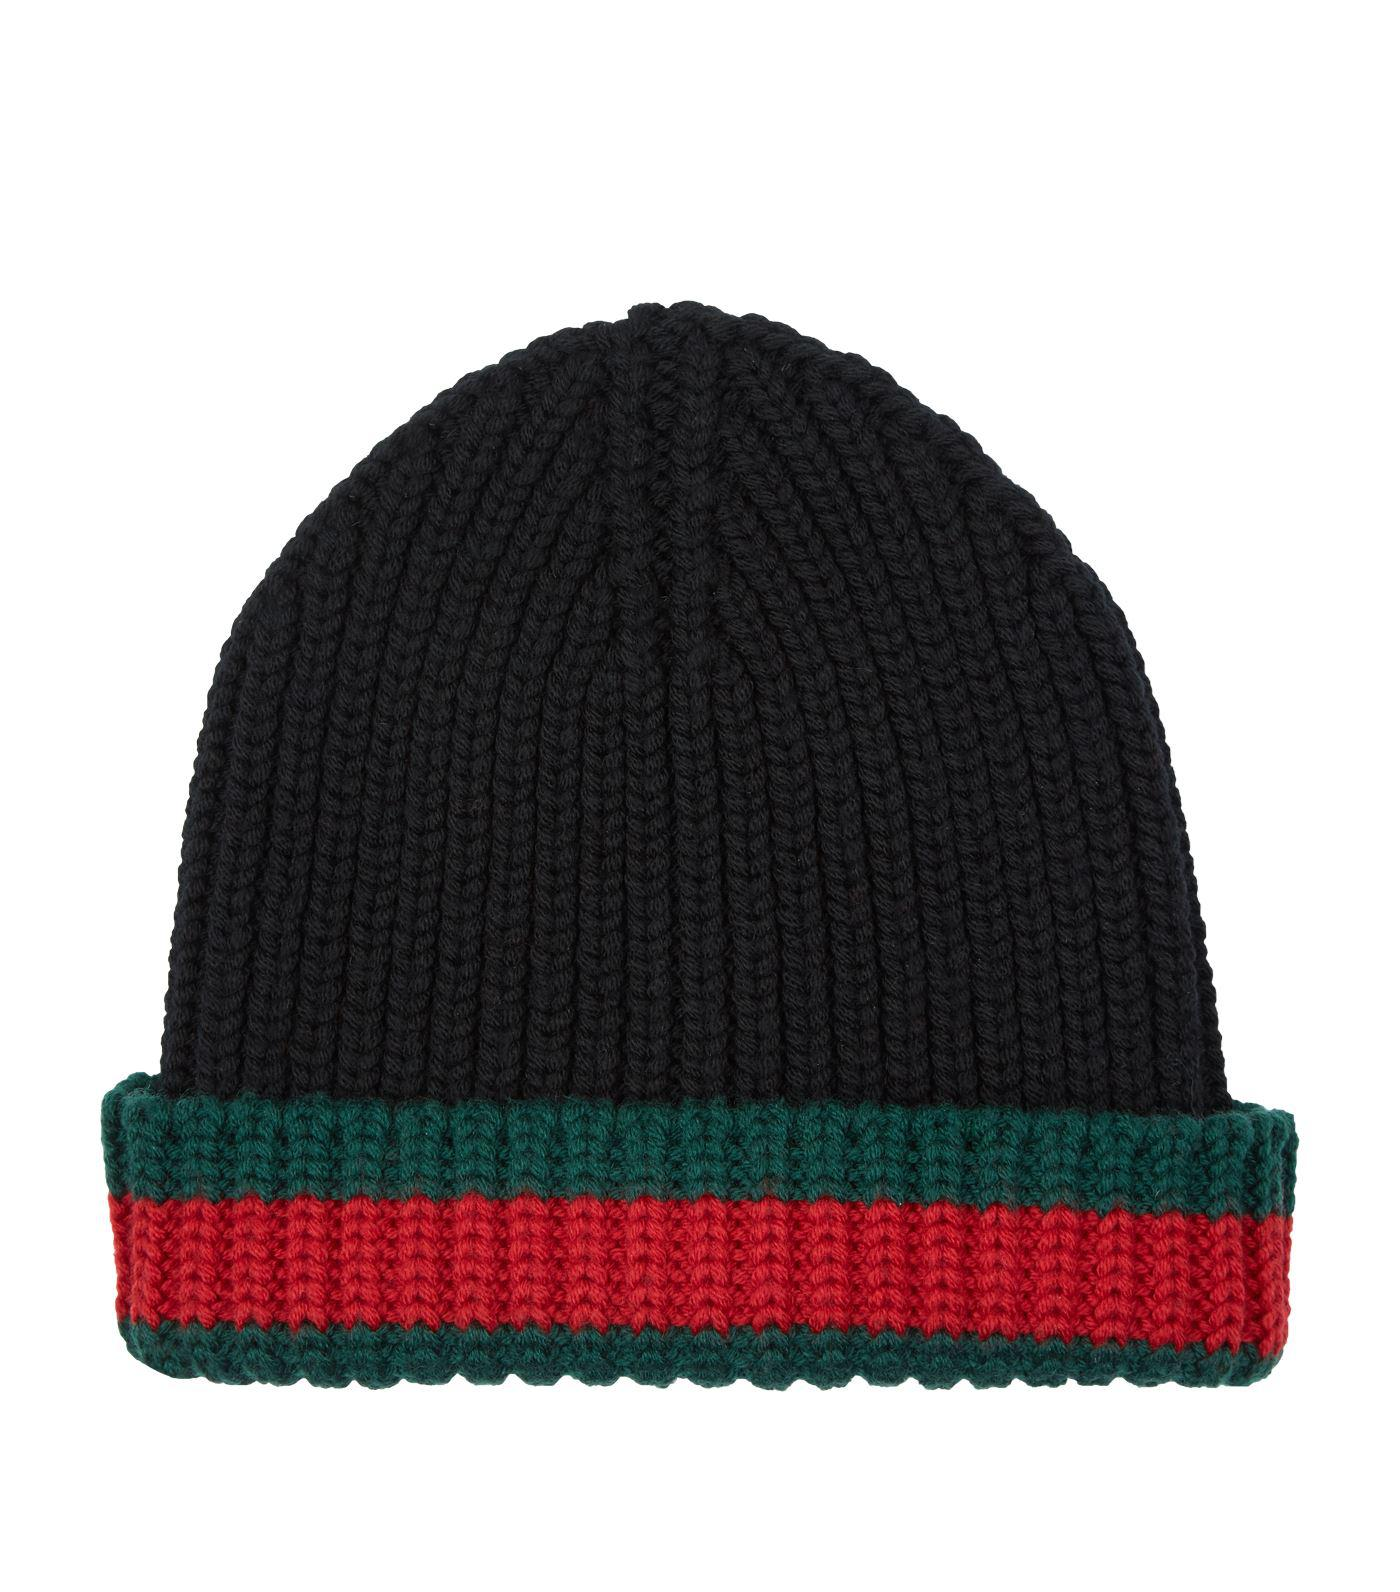 b8eadde2434 Gucci Wool Striped Beanie Hat in Black for Men - Lyst